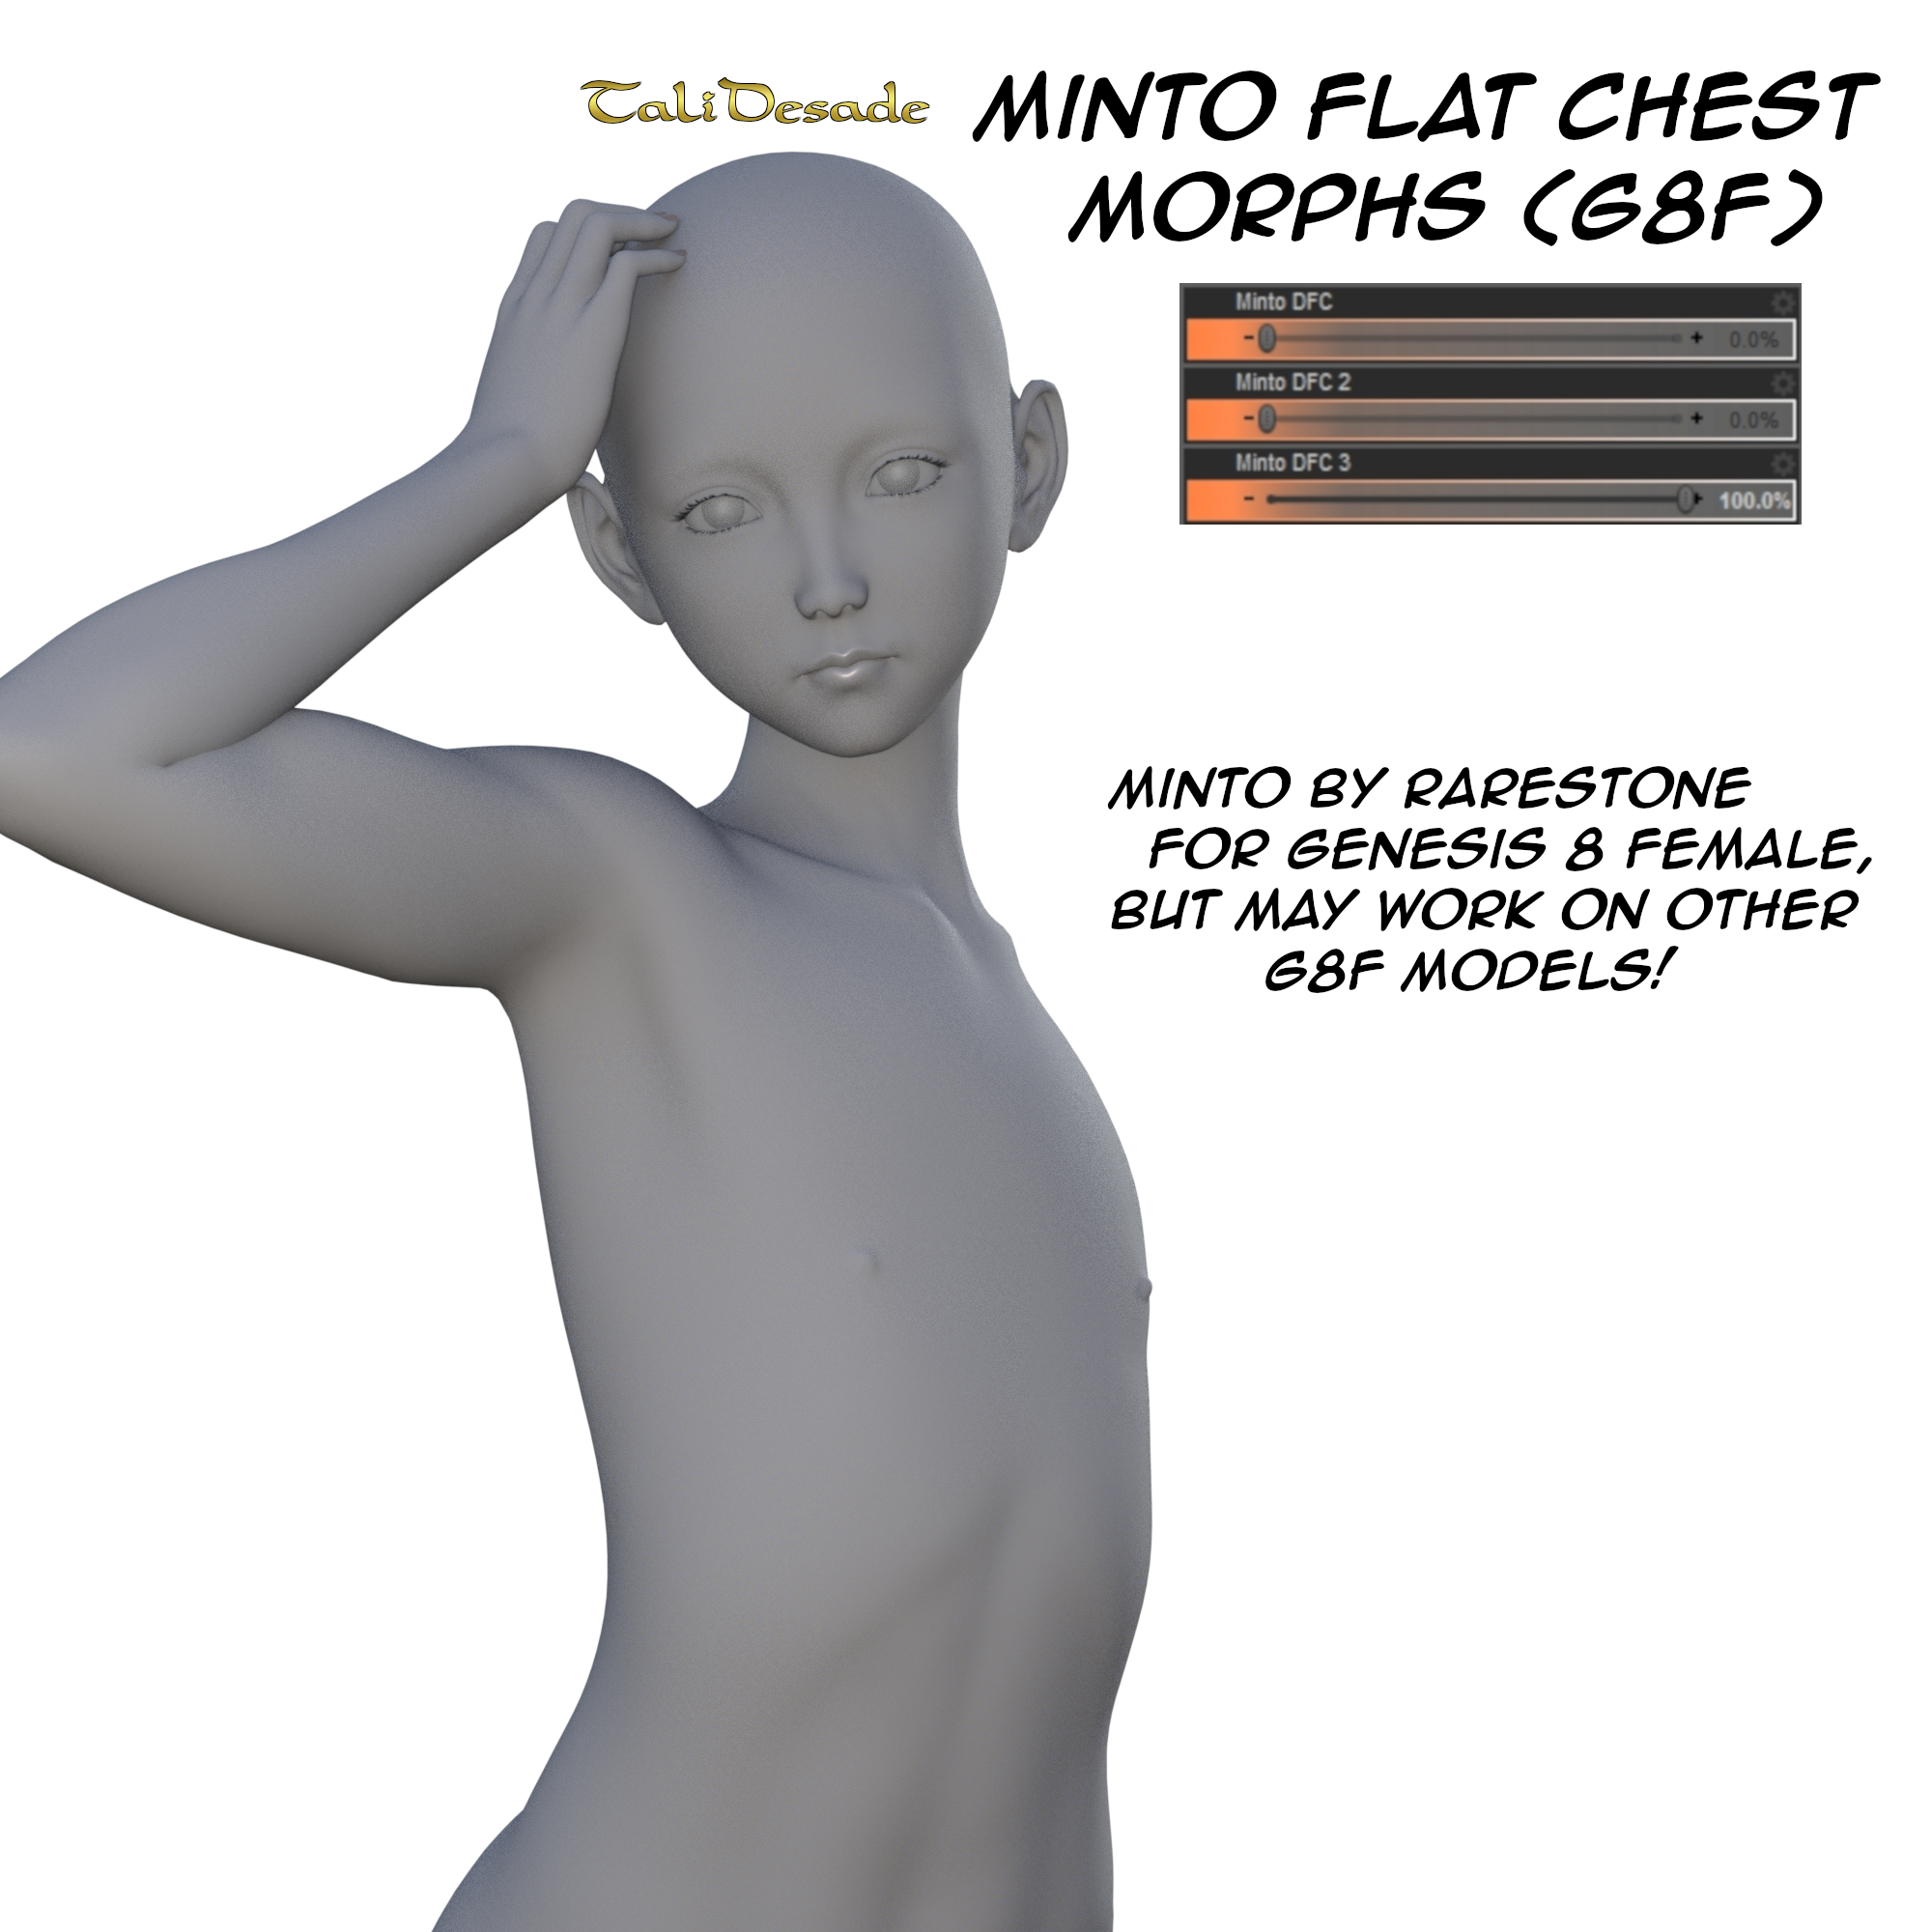 Minto Flat Chest Morphs by TaliDesade on DeviantArt